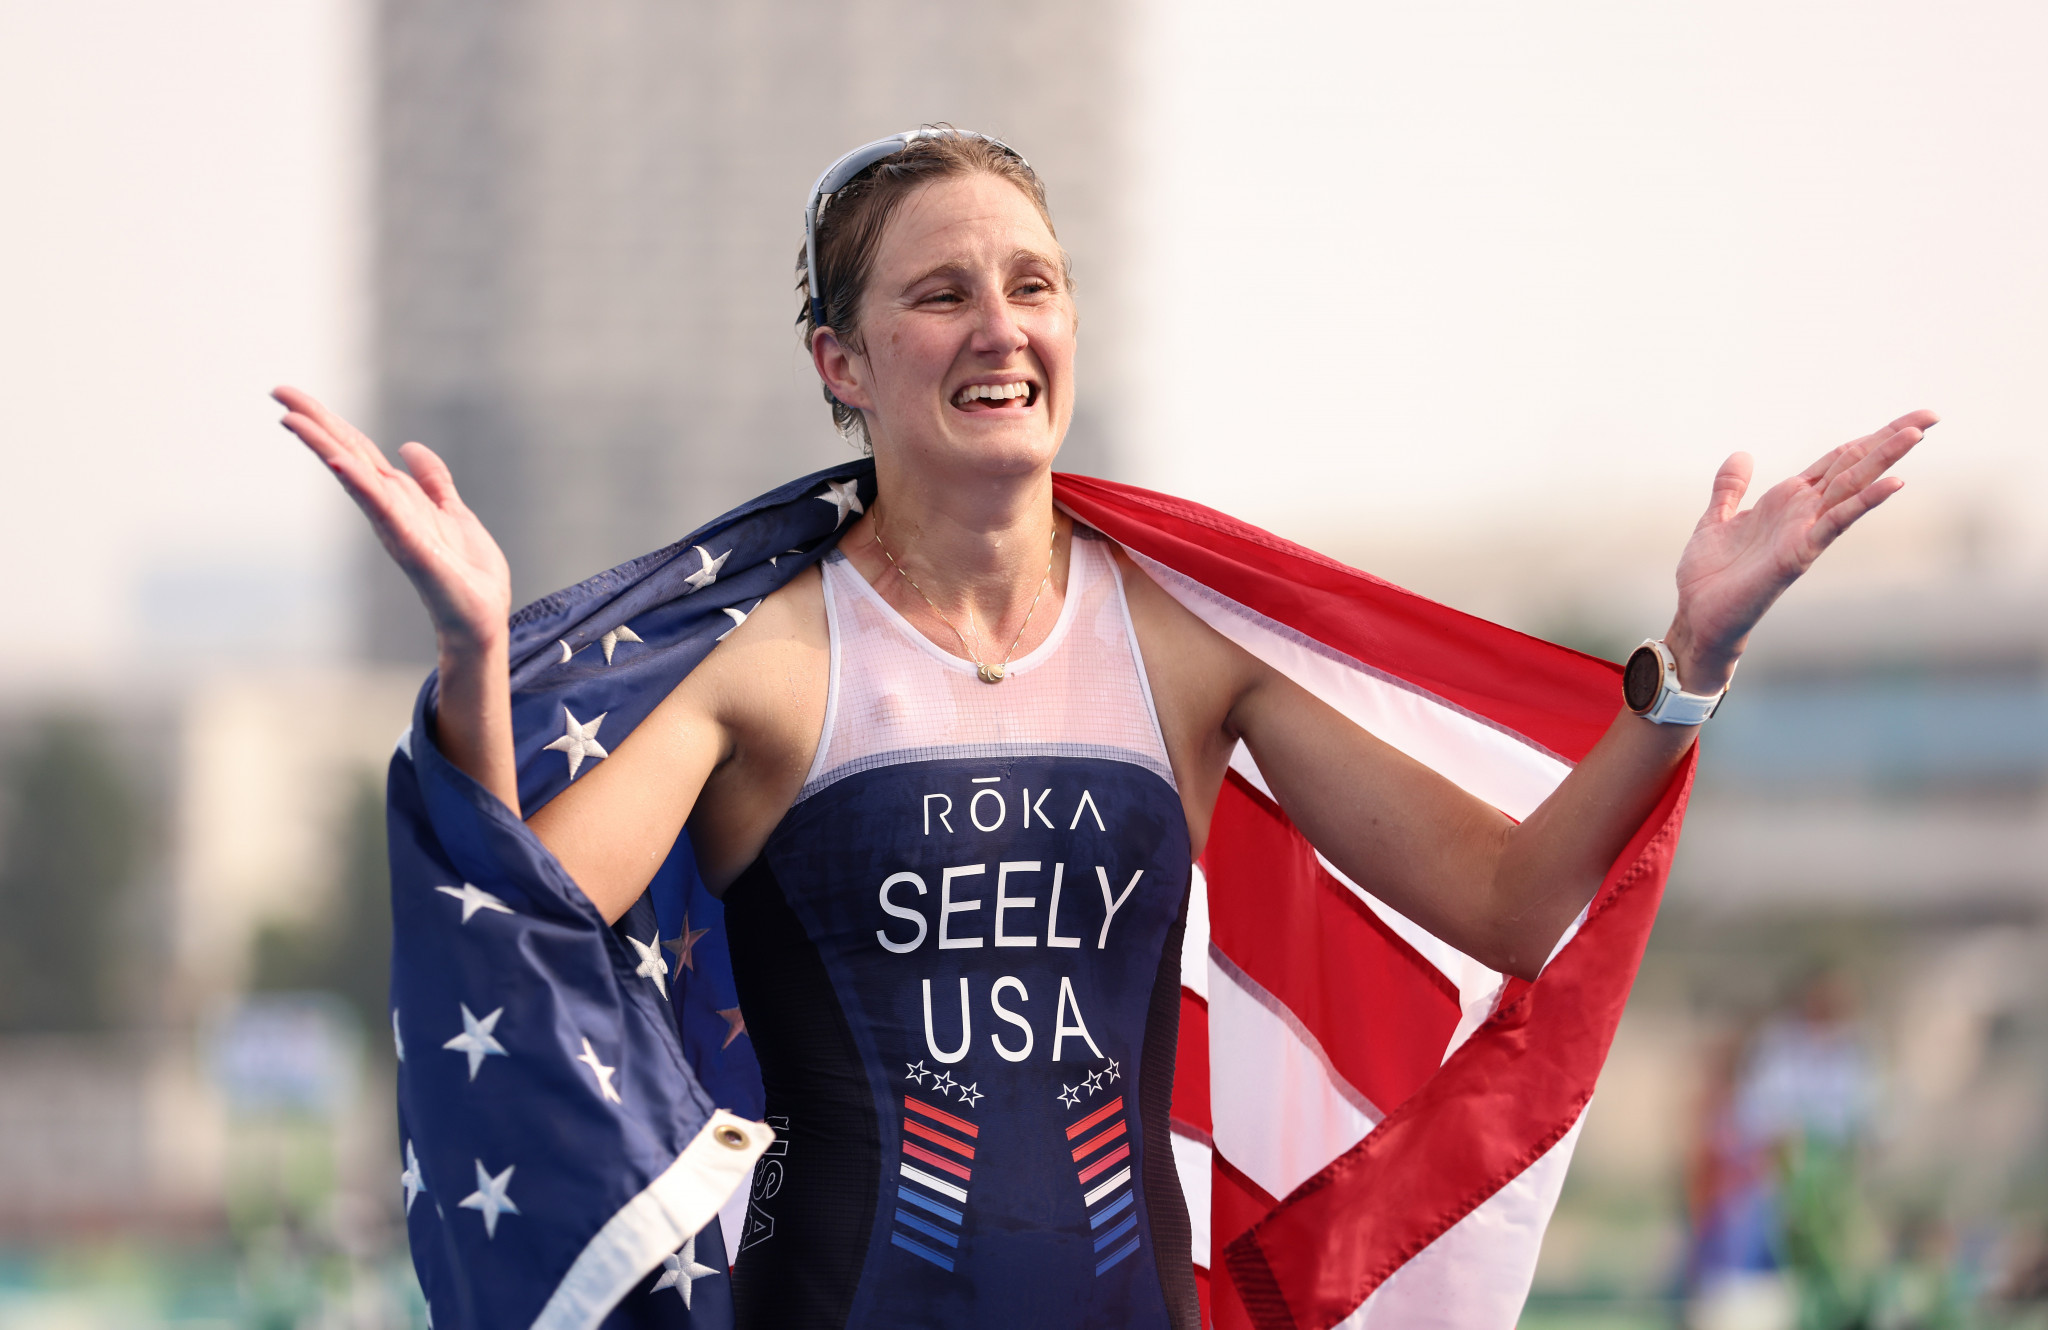 Seely retains Paralympic title as US capture two triathlon golds